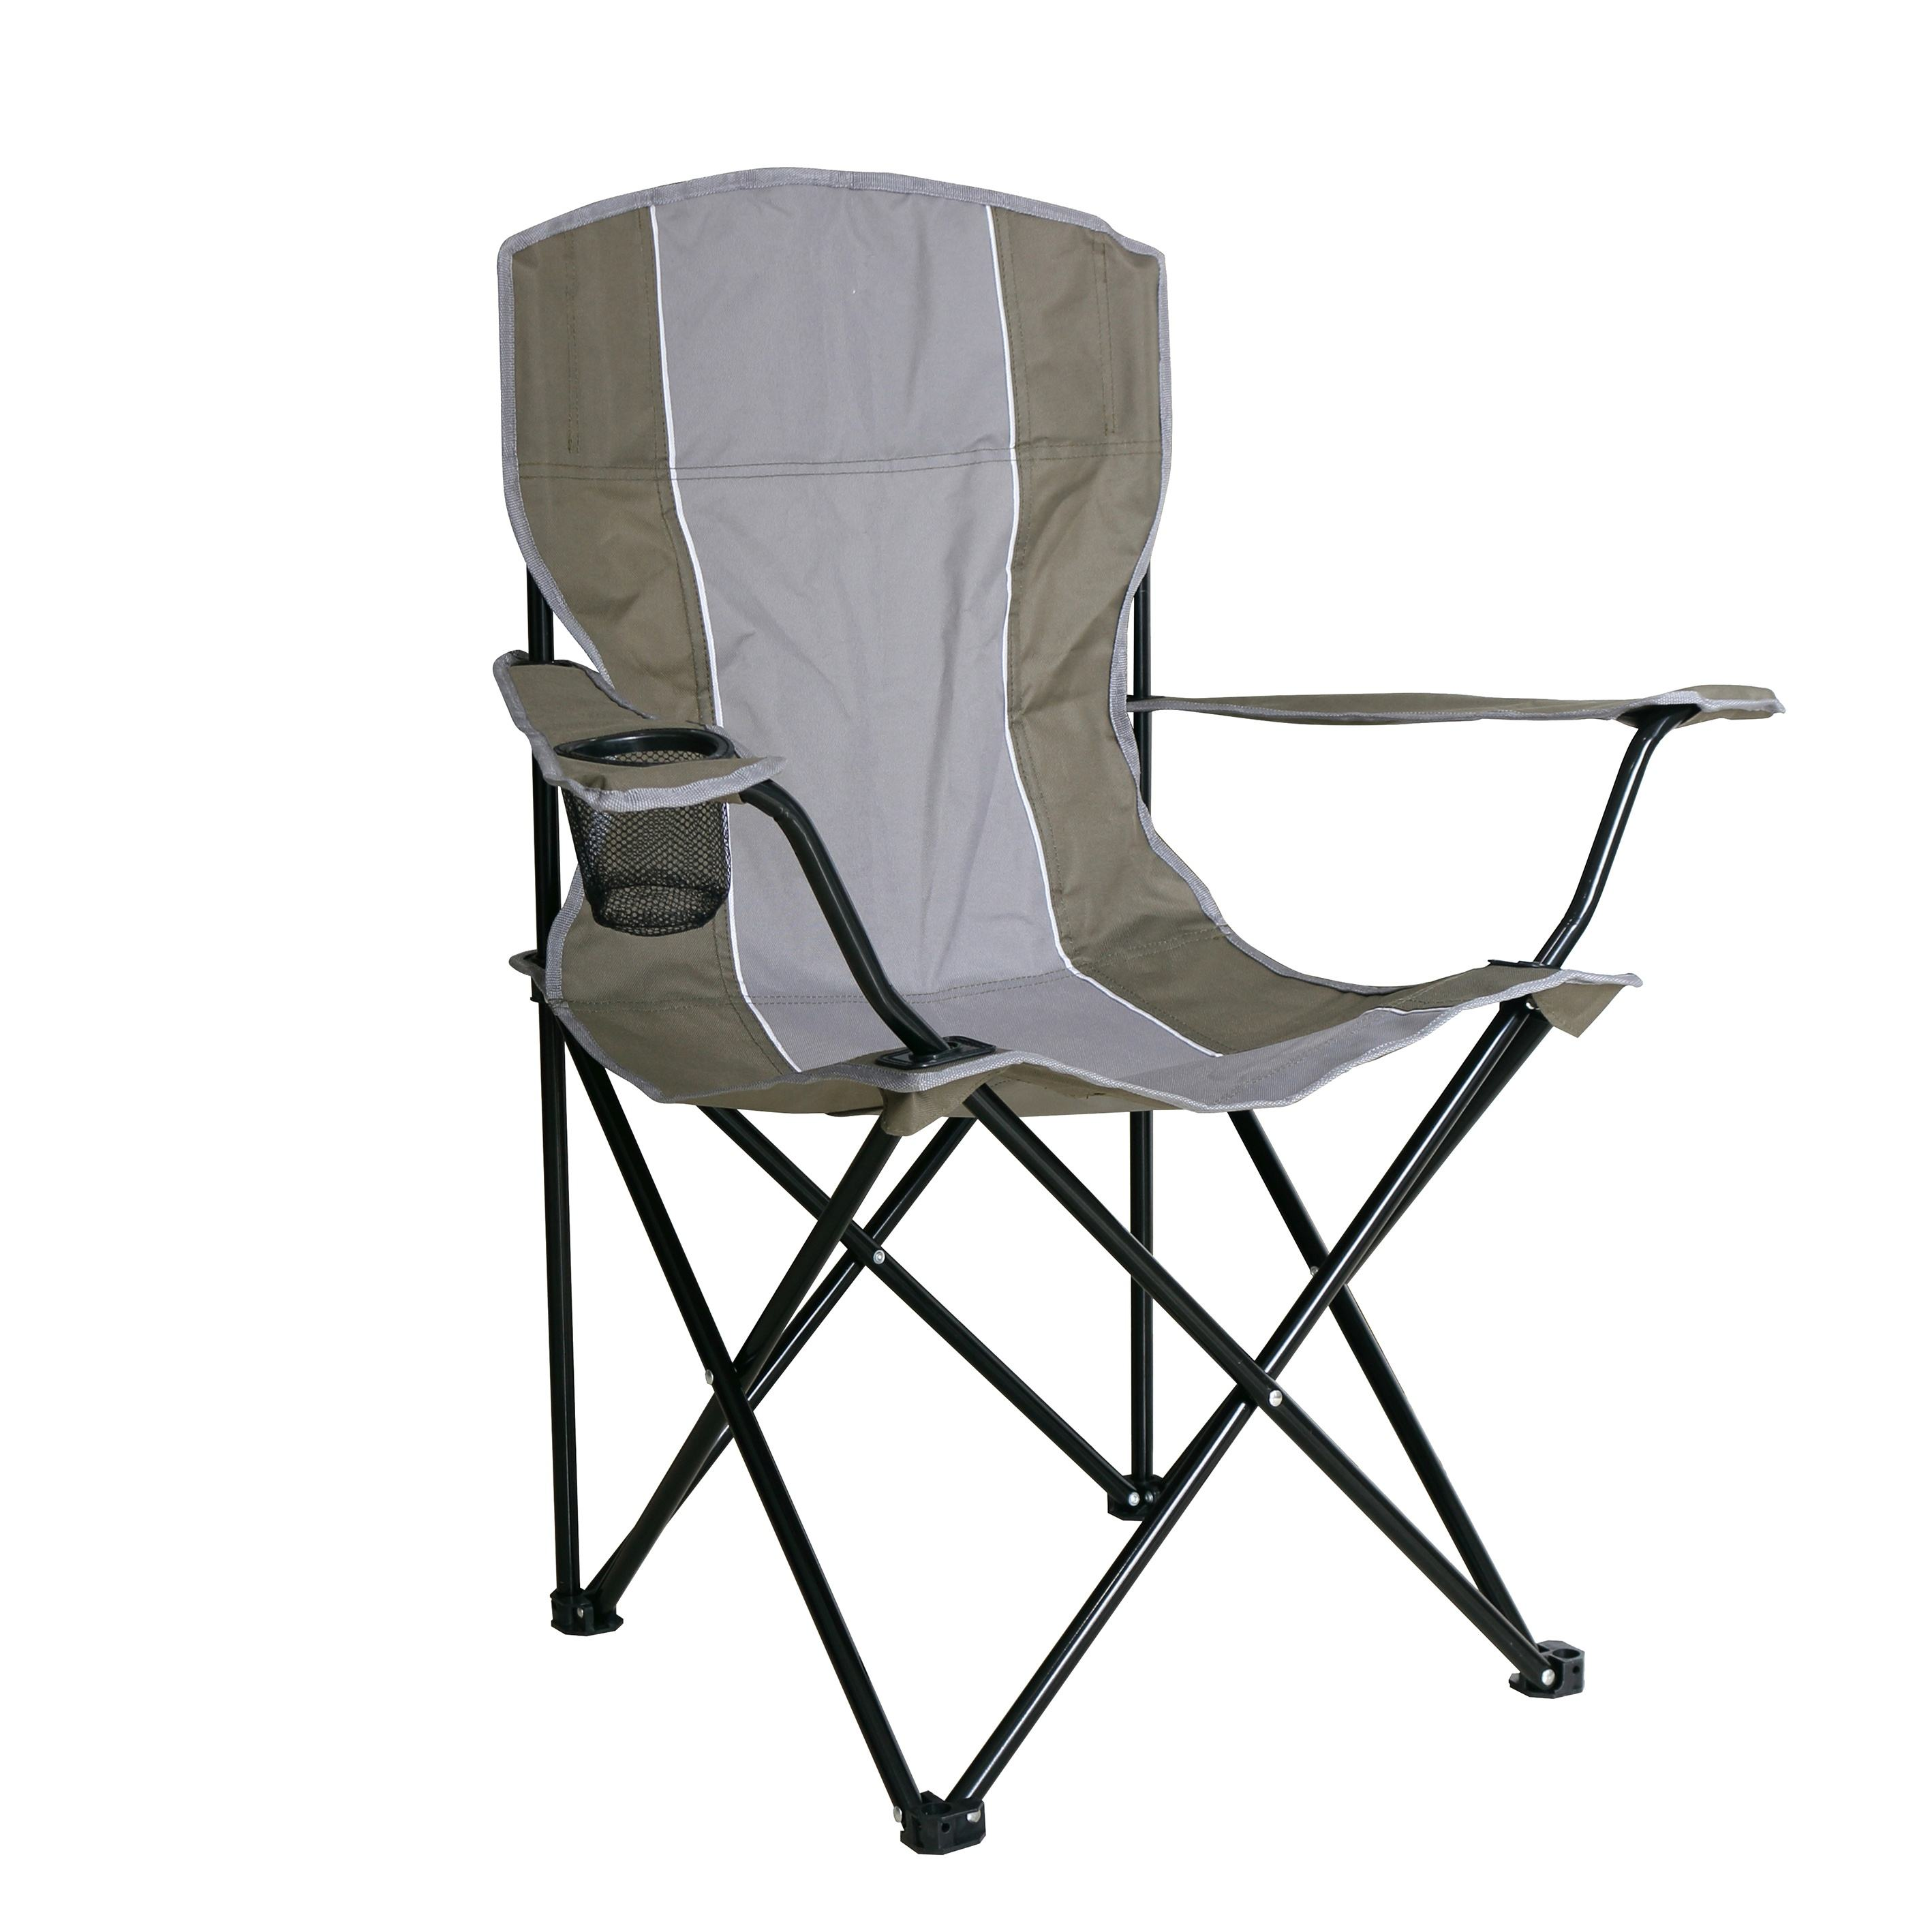 Comfortable Beach Folding Picnic Camping Tailgate Chair With Cup Holder